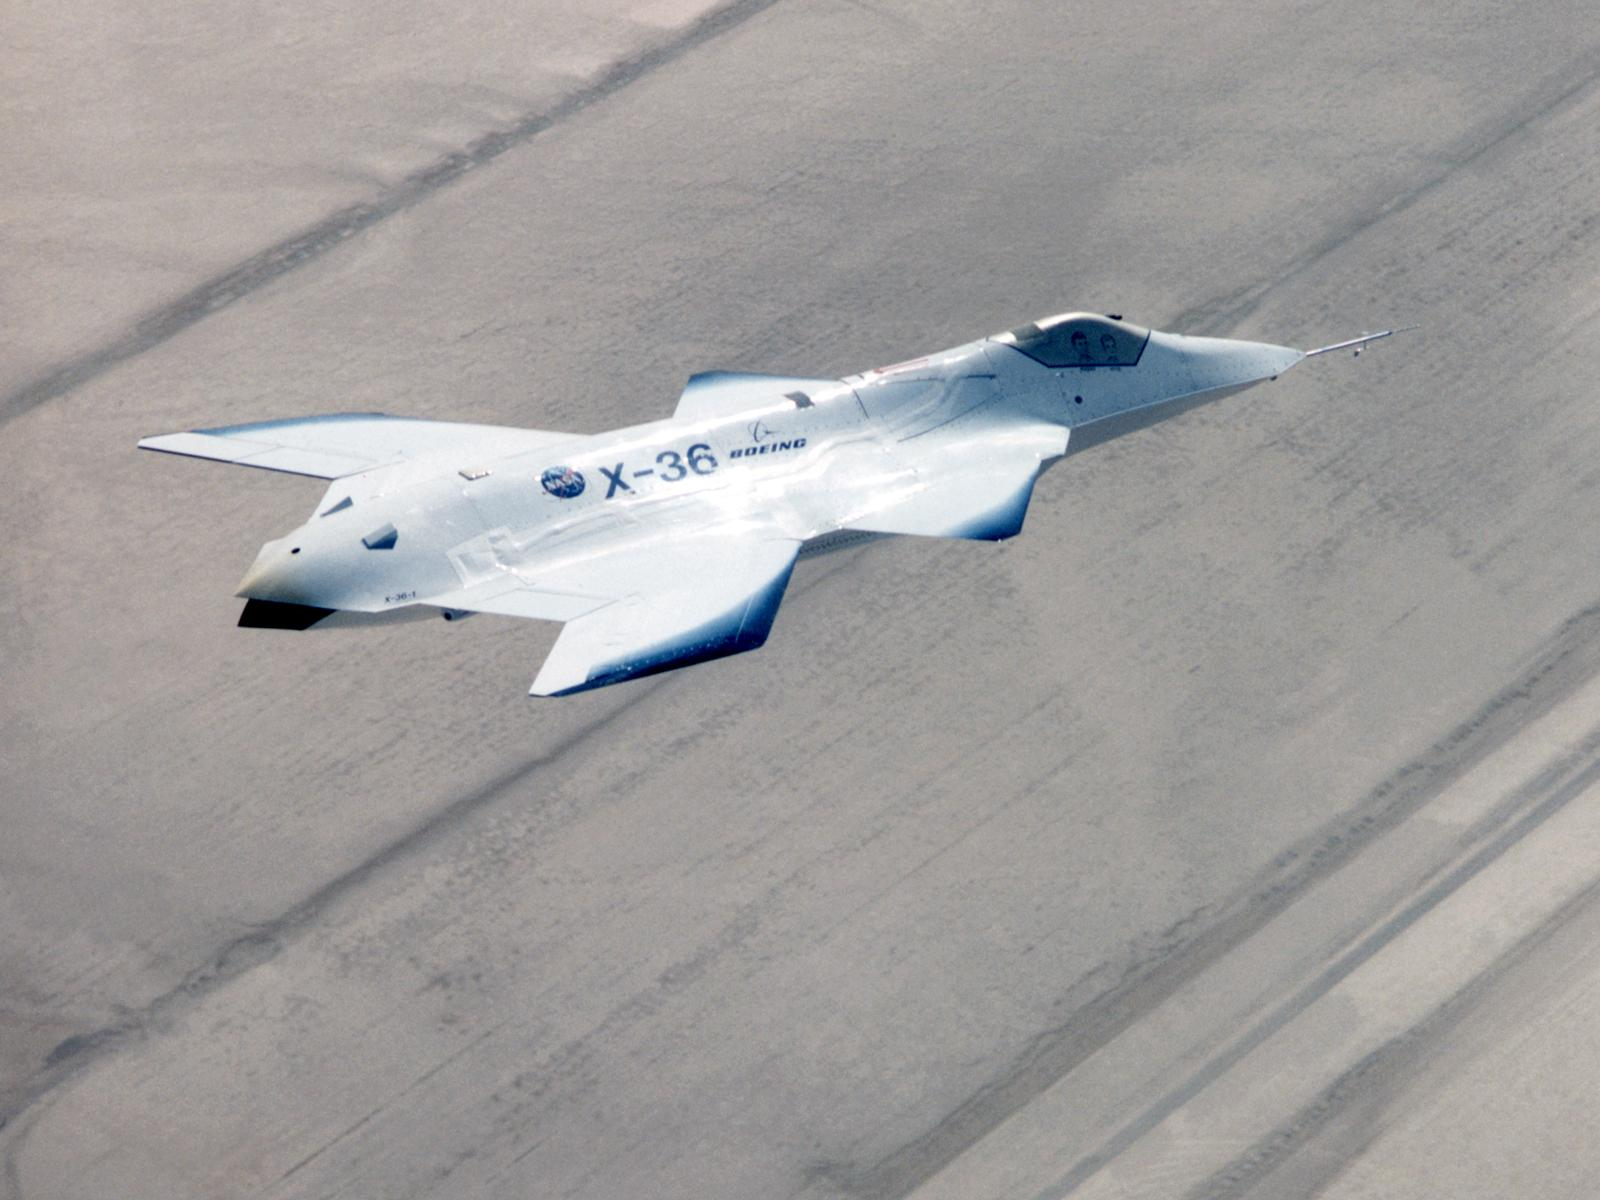 X-36 Tailless Fighter Agility Research Aircraft